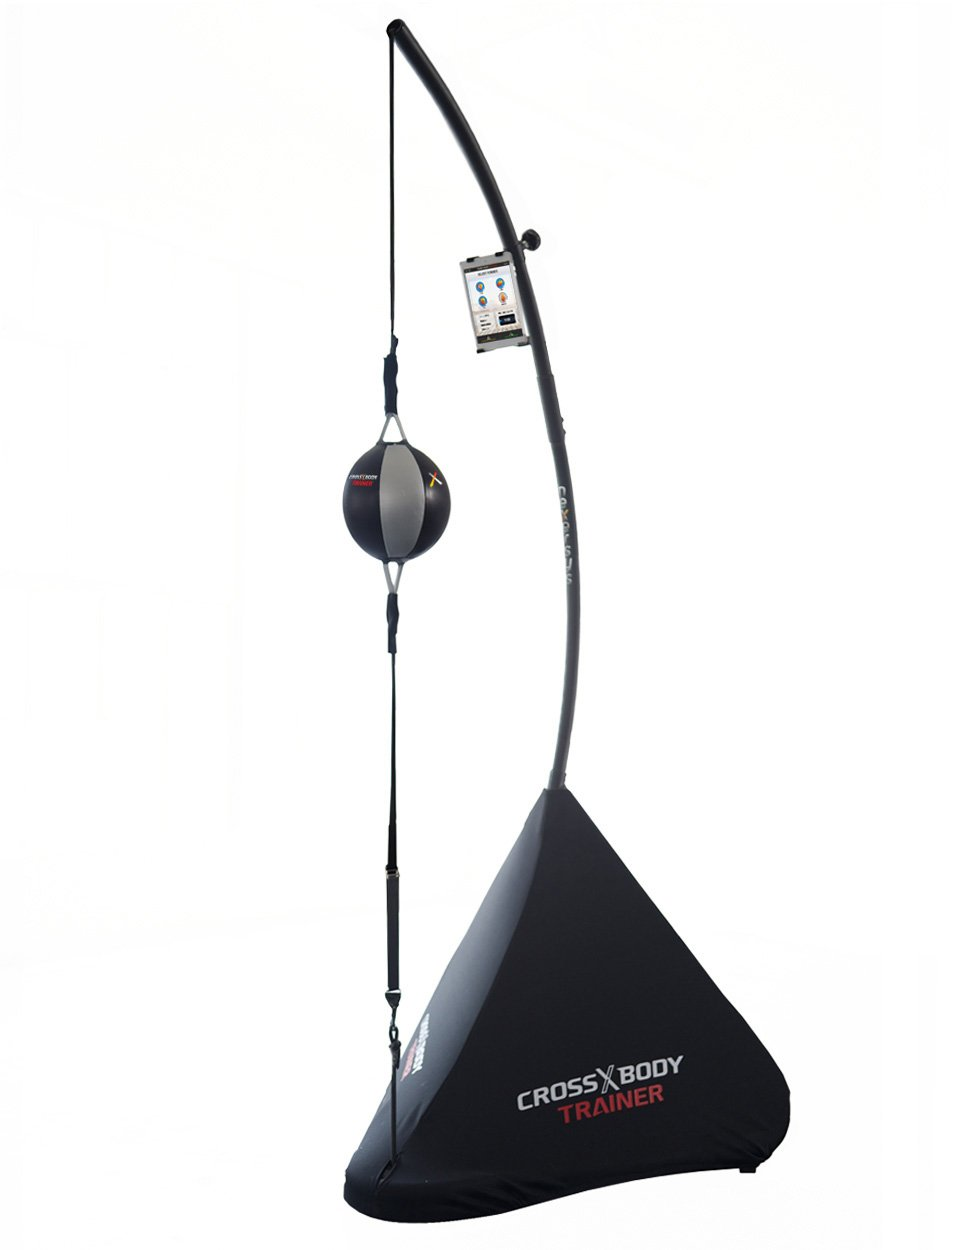 Nexersys Cross Body Trainer with Interactive Double End Bag for Boxing & MMA, Large, Matte Black by Nexersys (Image #1)